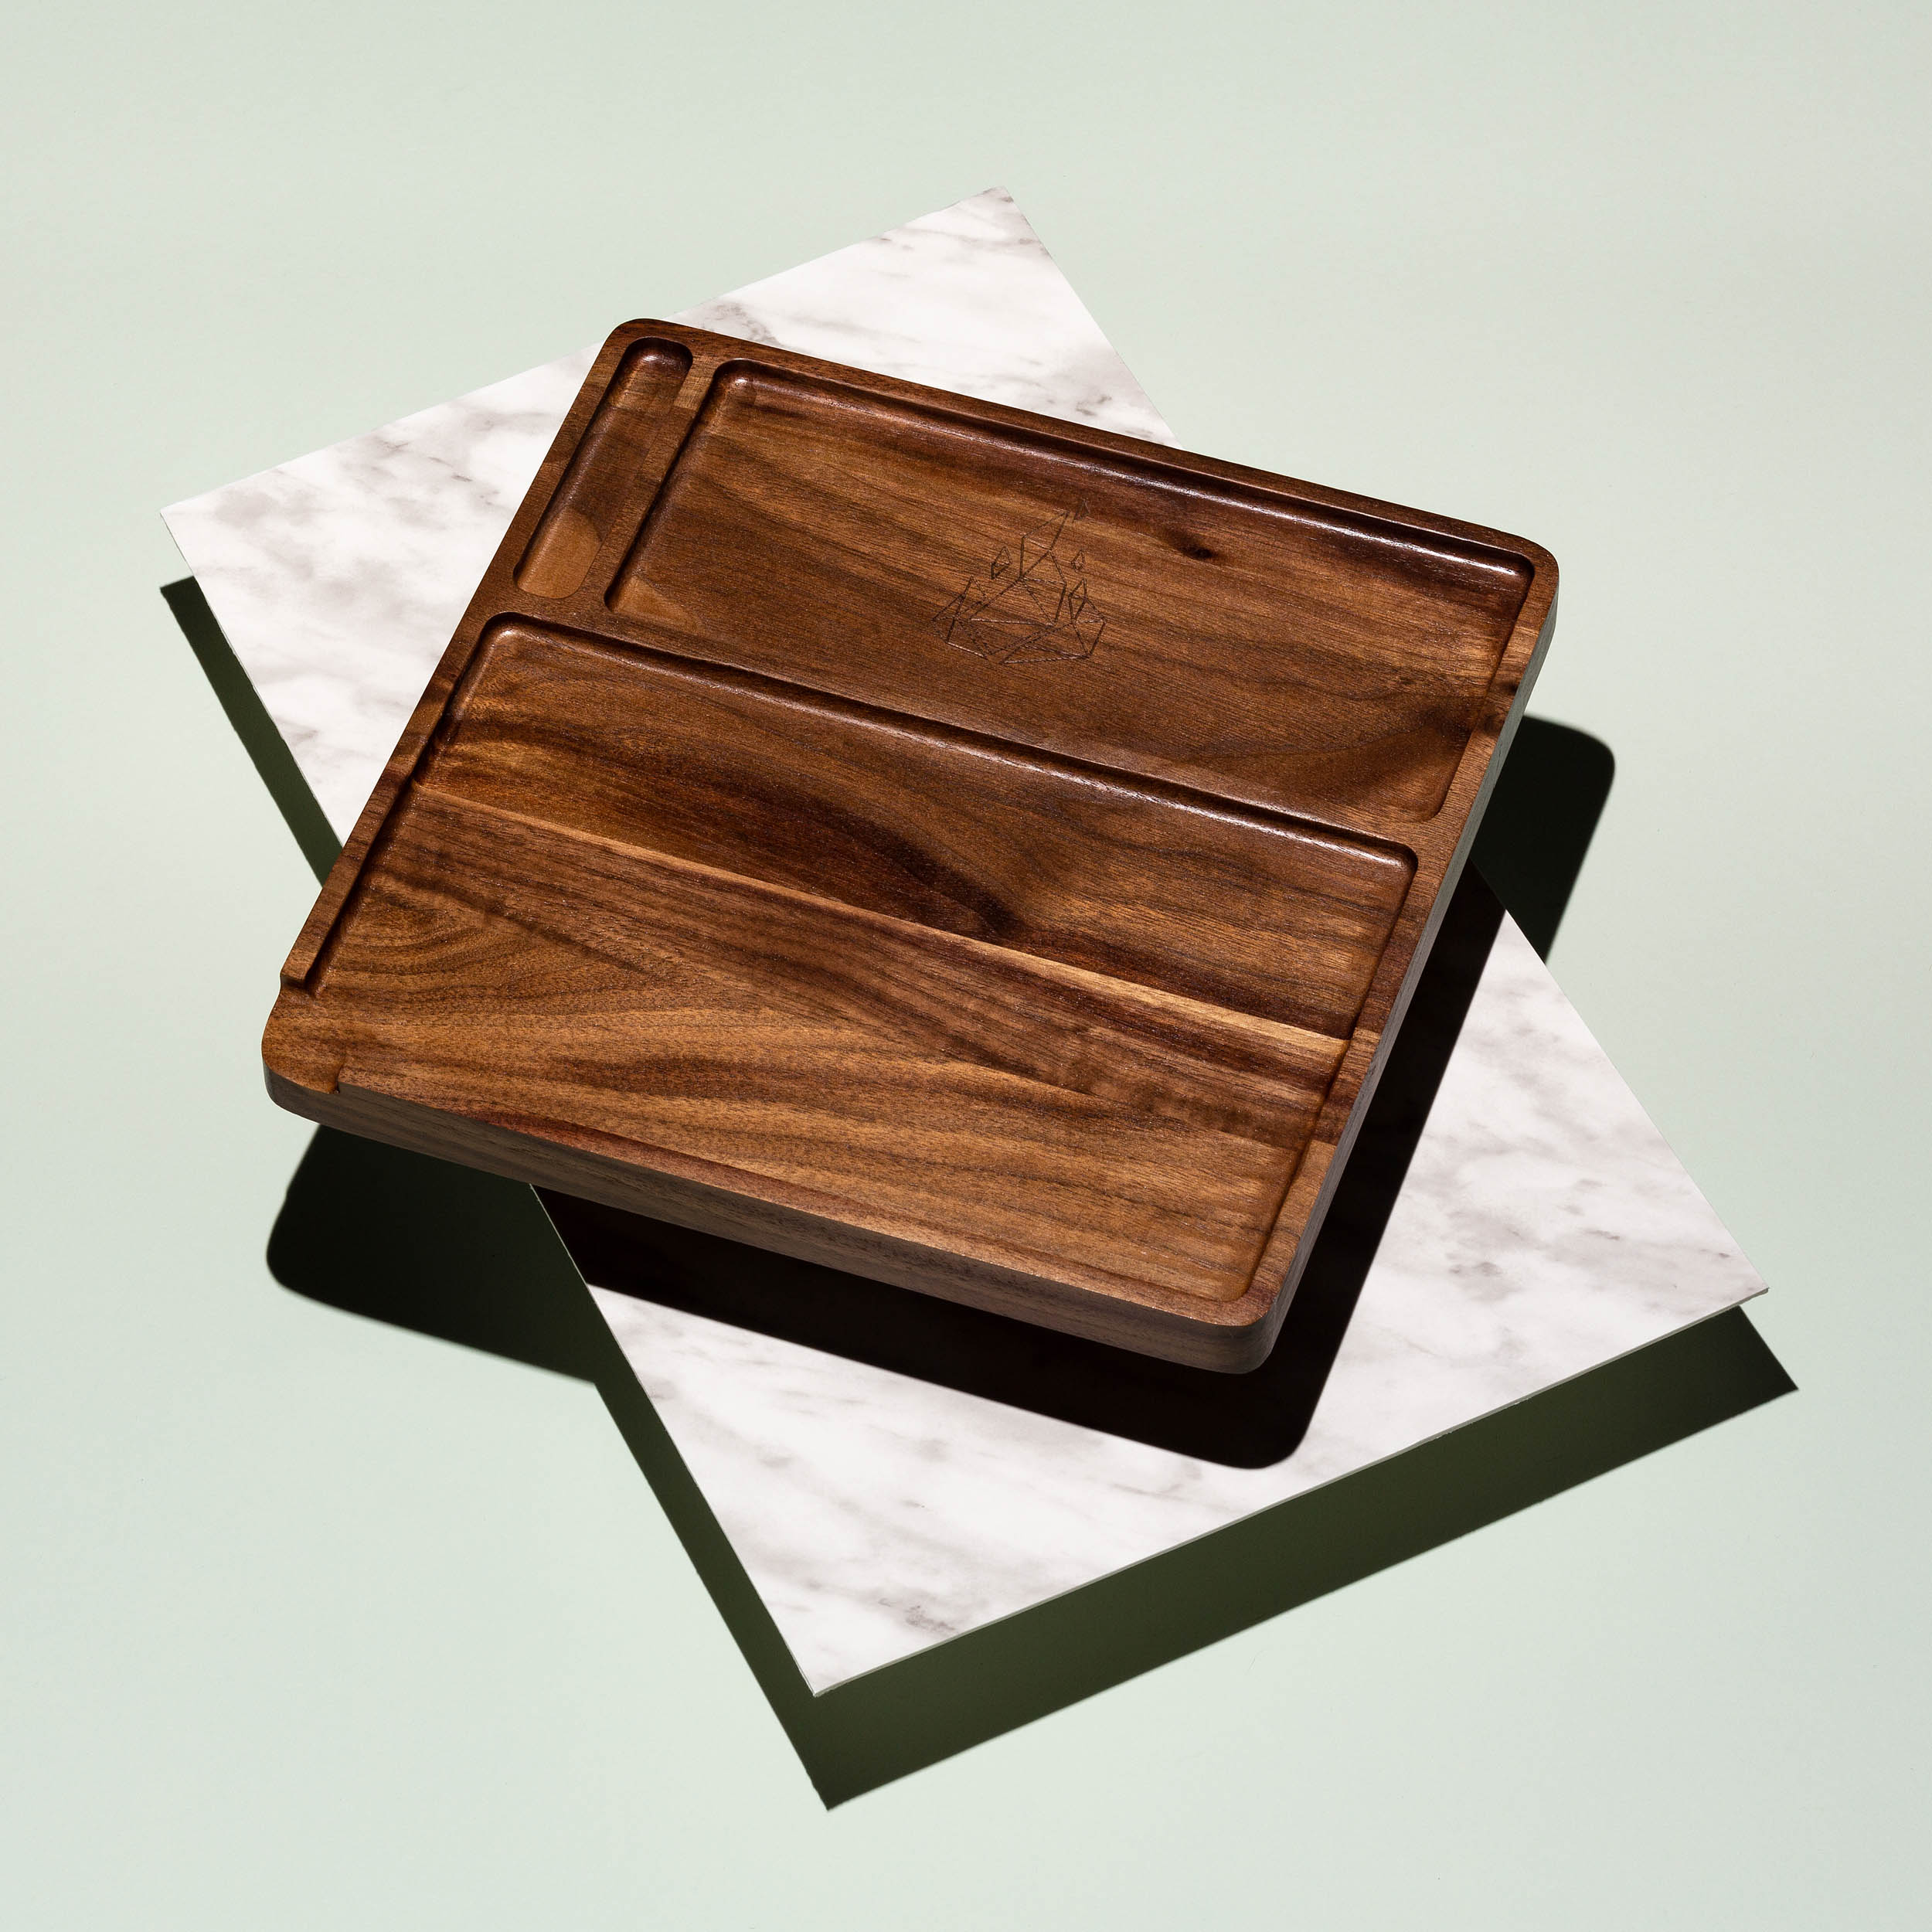 Yaketa Cannabis Rolling Tray Product Photography by Worker Bee Supply